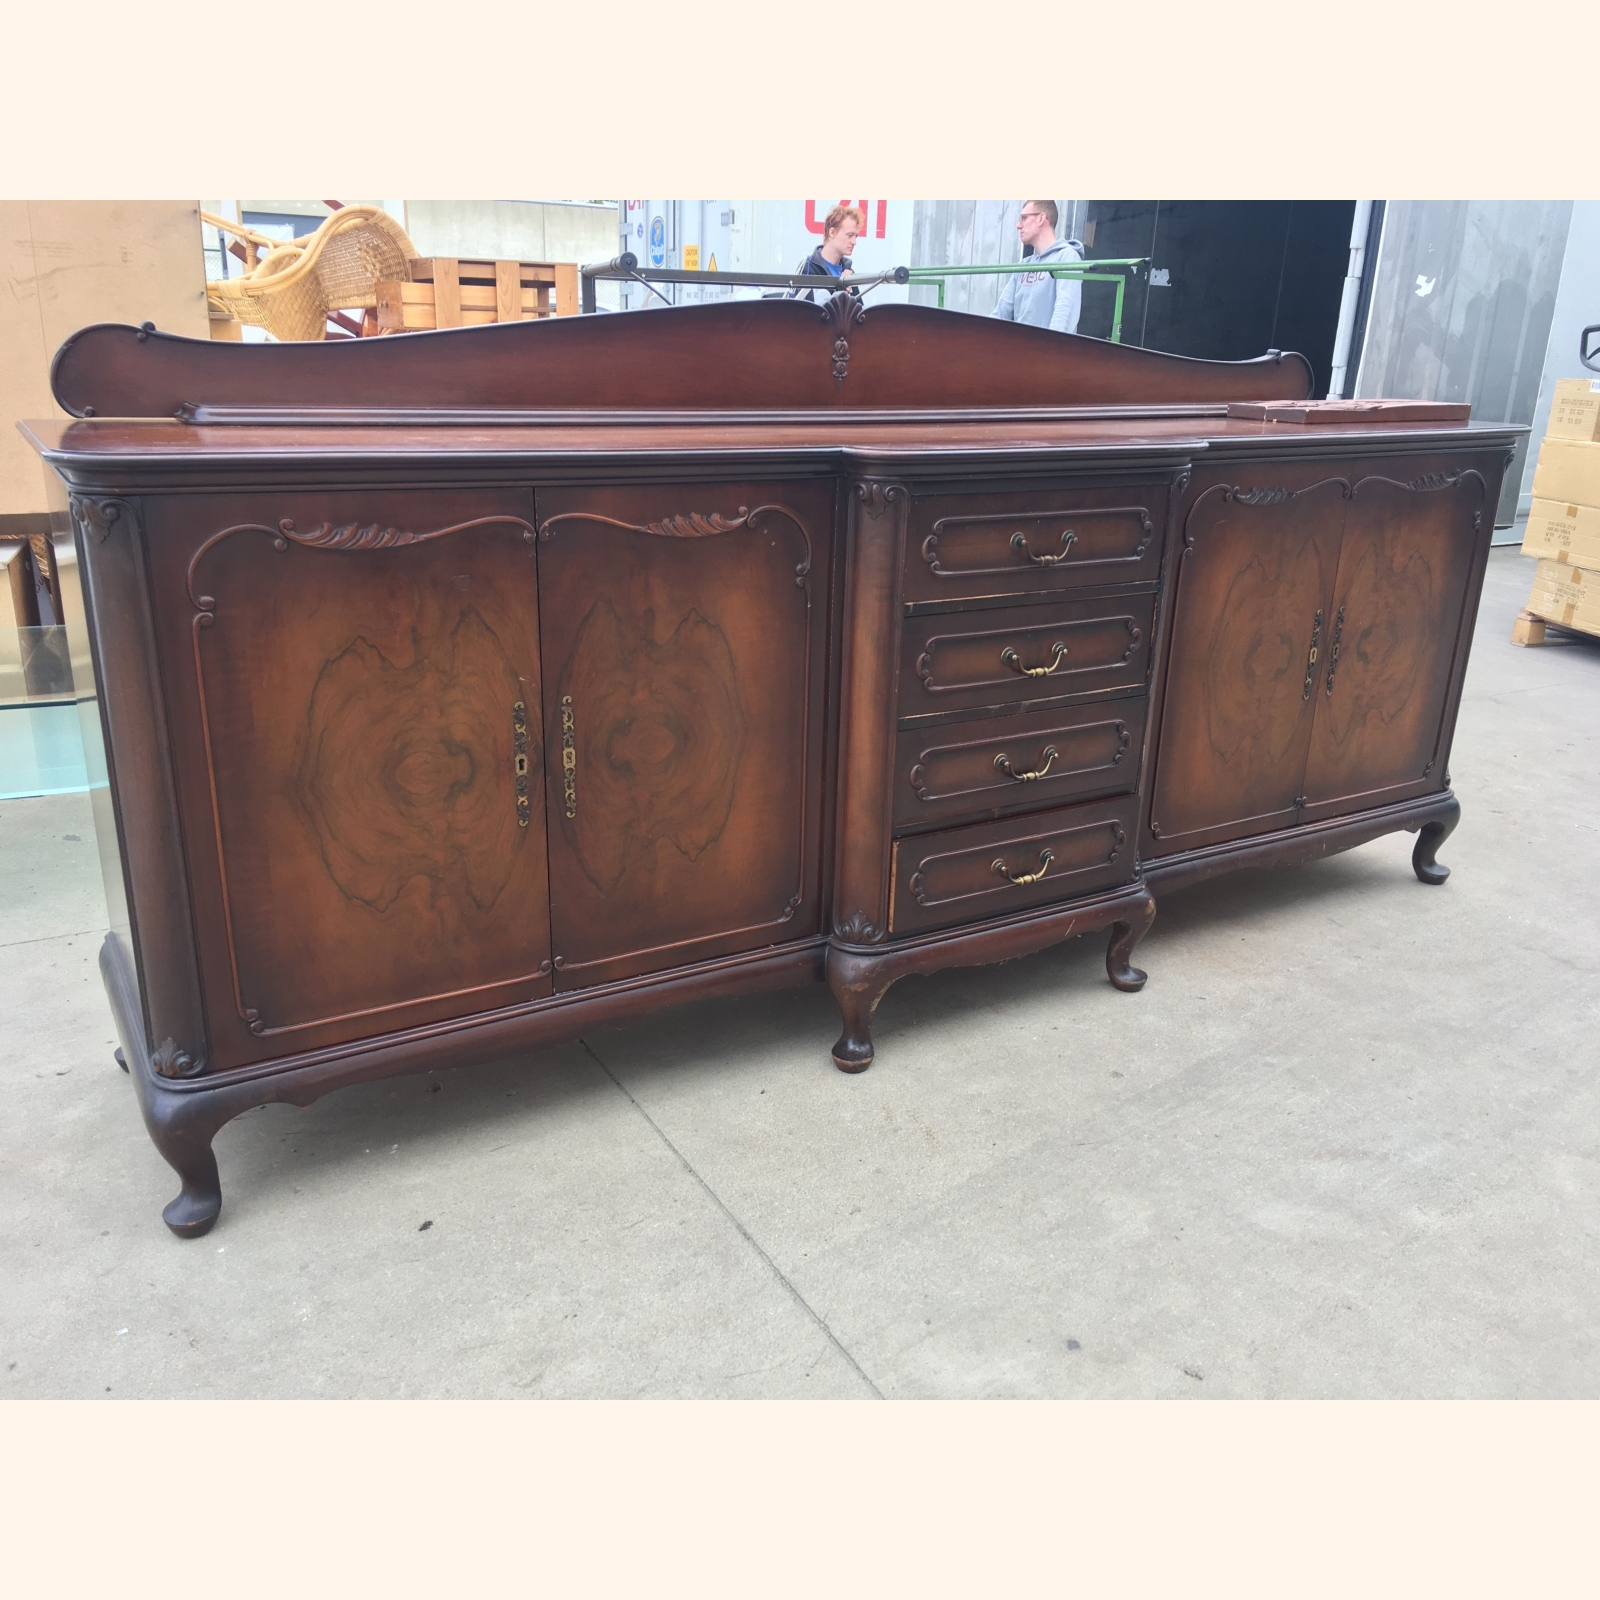 A++ A 43 43 Solid Wood Cabinet Furniture Mix 1m3 A Exports